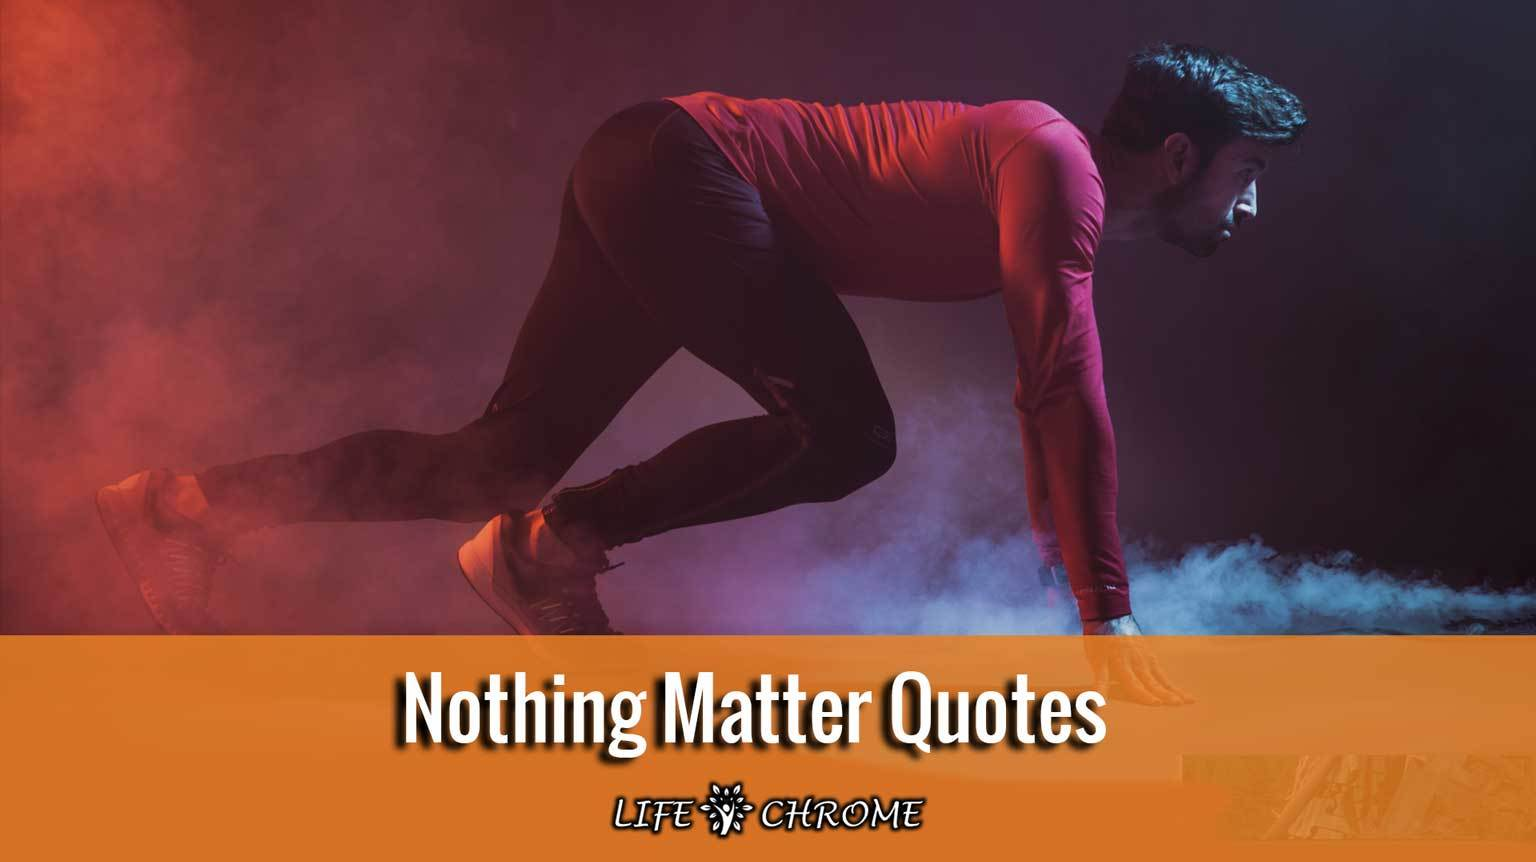 Nothing Matter Quotes